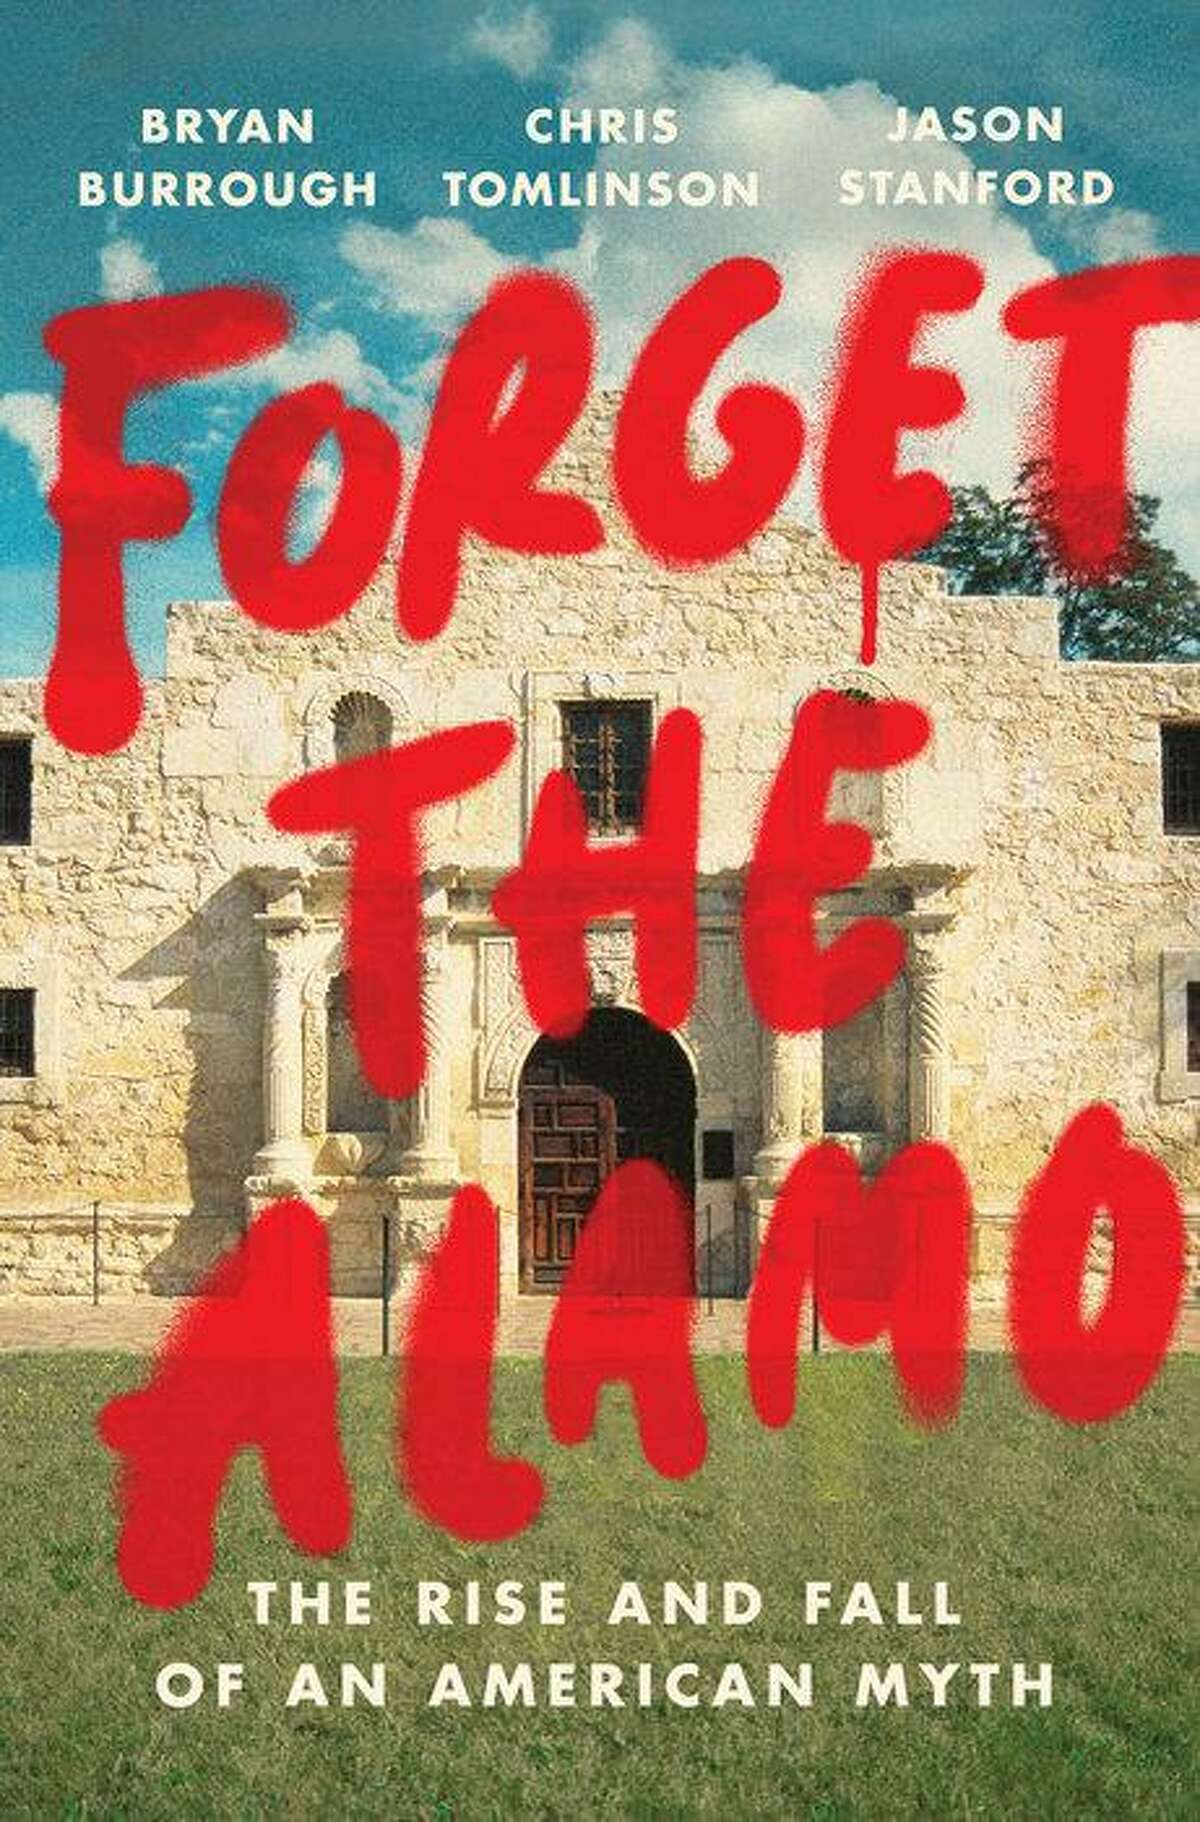 """""""Forget the Alamo: The Rise and Fall of an American Myth,"""" written by Bryan Burrough, Chris Tomlinson and Jason Stanford, was published in June 2021."""